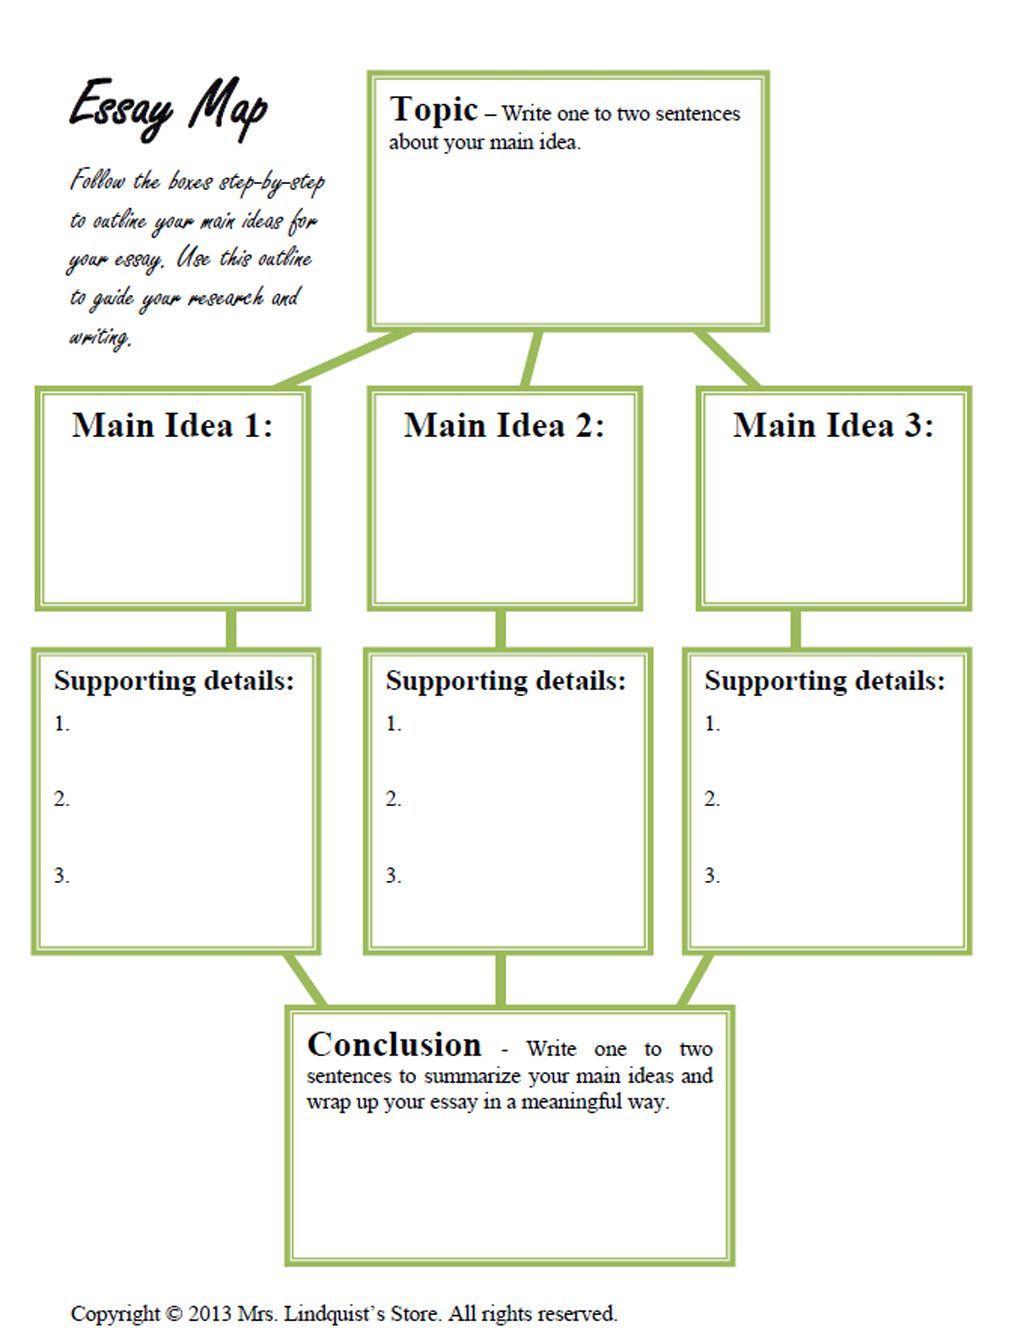 Using Graphic Organizers And Rubrics To Aid Students With